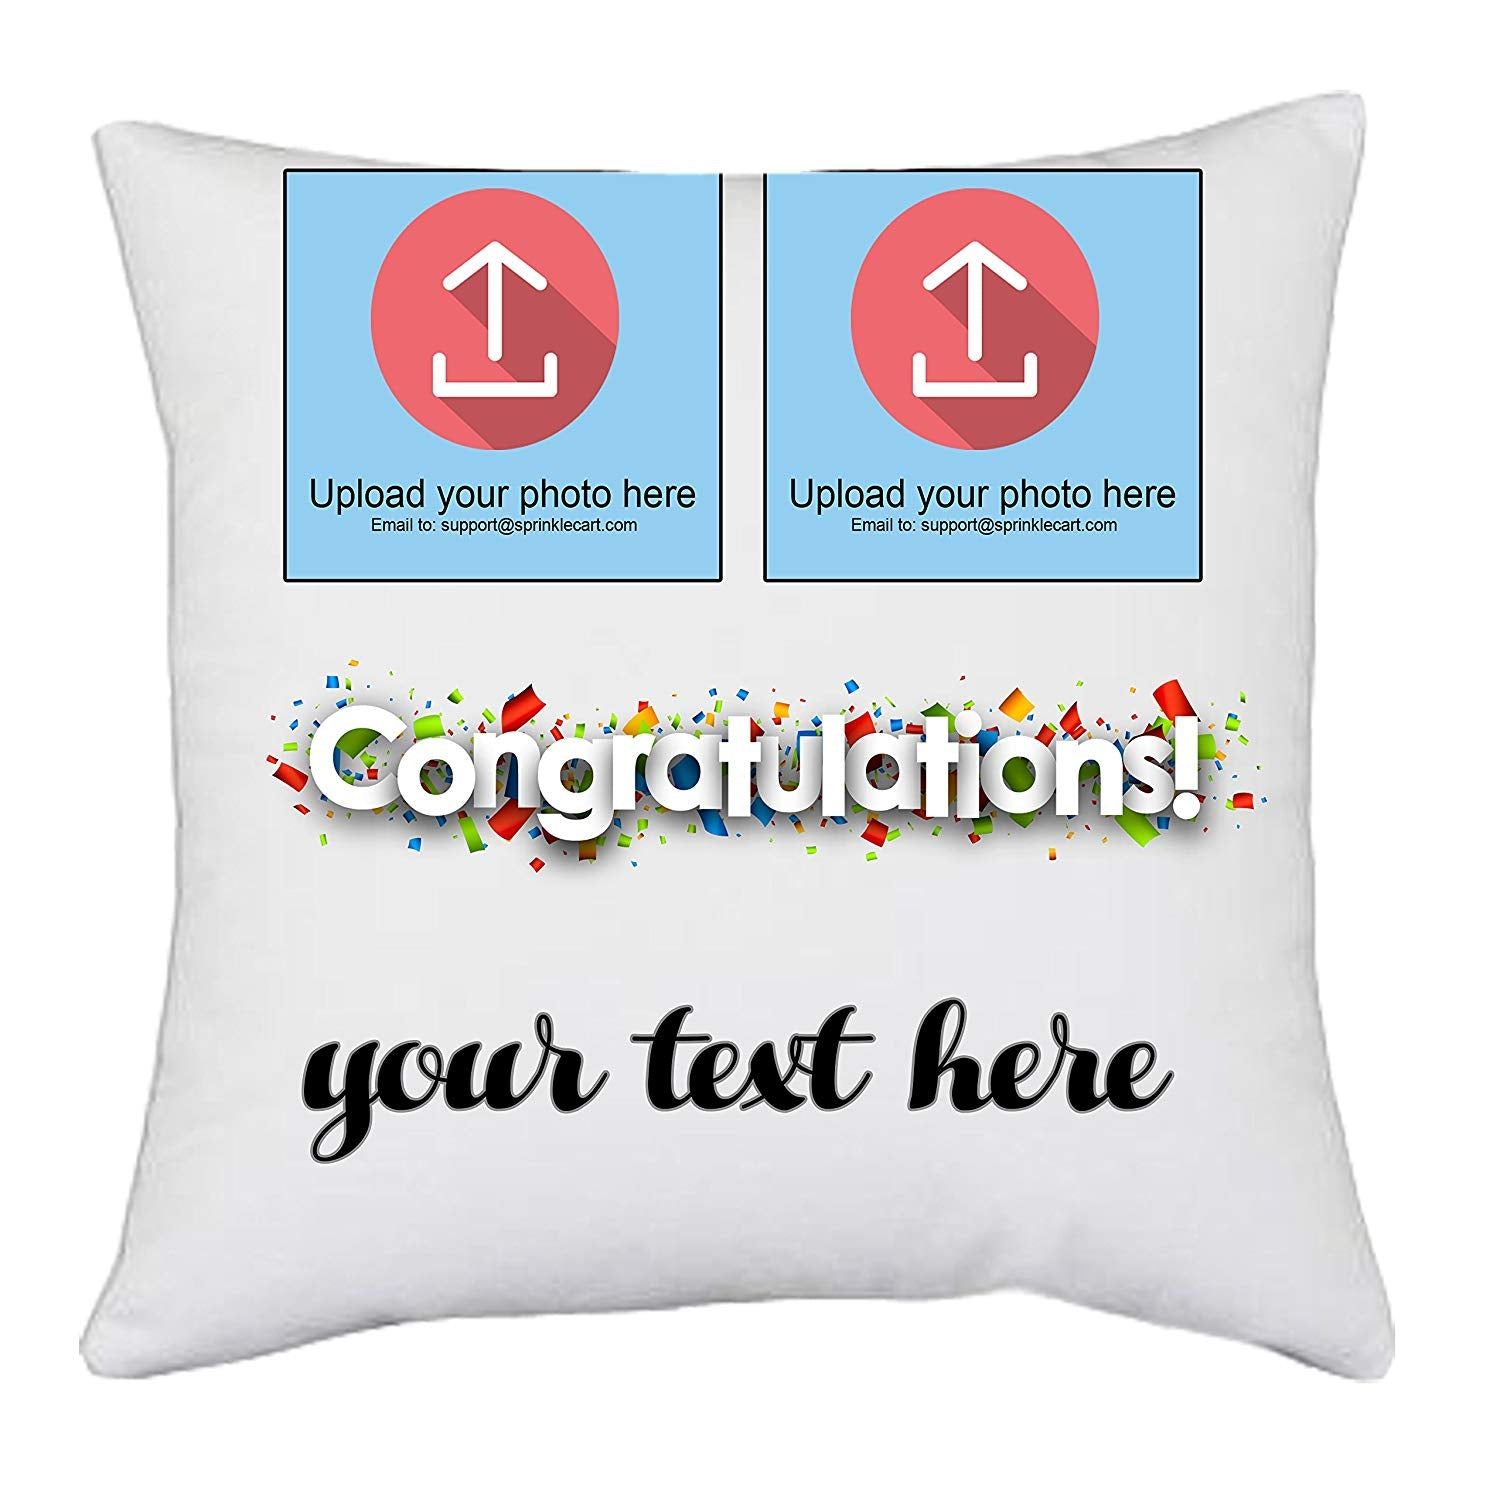 Sprinklecart's Customized Message and Photo Printed Congratulations Gift Cushions for Your Dear One | 15″ x 15″ with Filler Insert